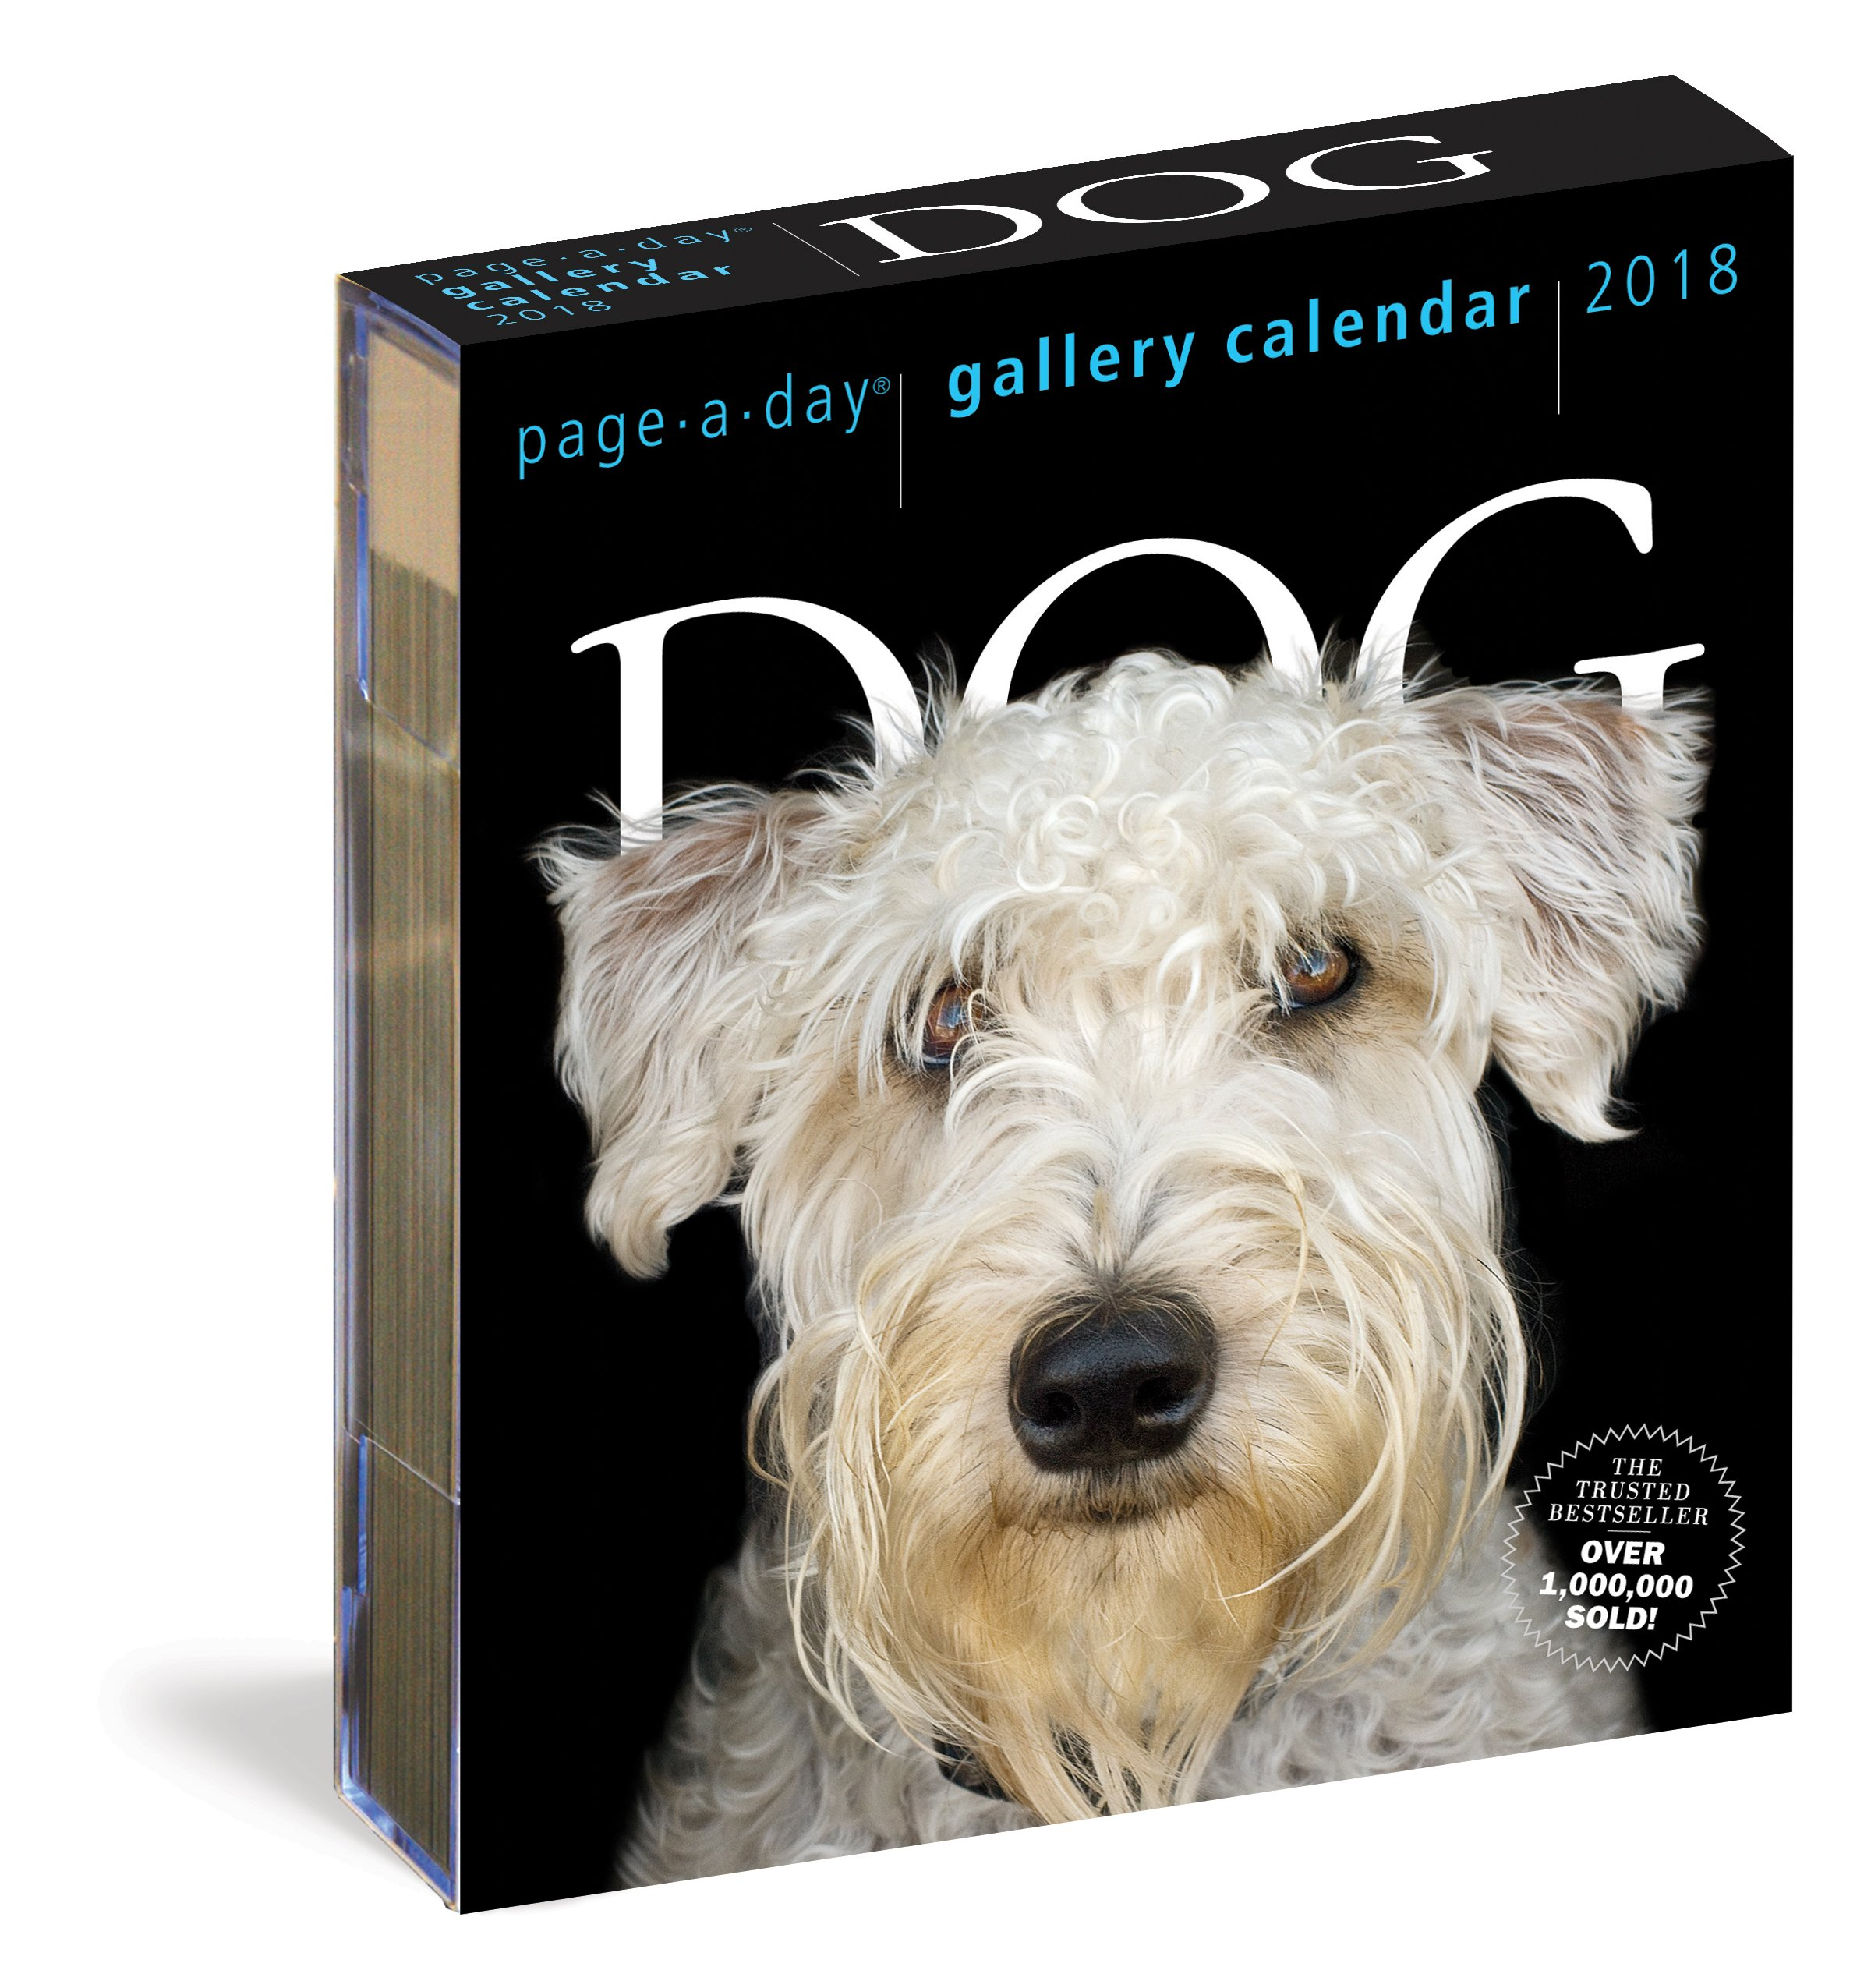 Dog Page-A-Day Gallery Calendar 2018 Calendar – Day to Day Calendar, Aug 3 2017 Workman Publishing Workman Publishing Company 152350045X Dogs - General